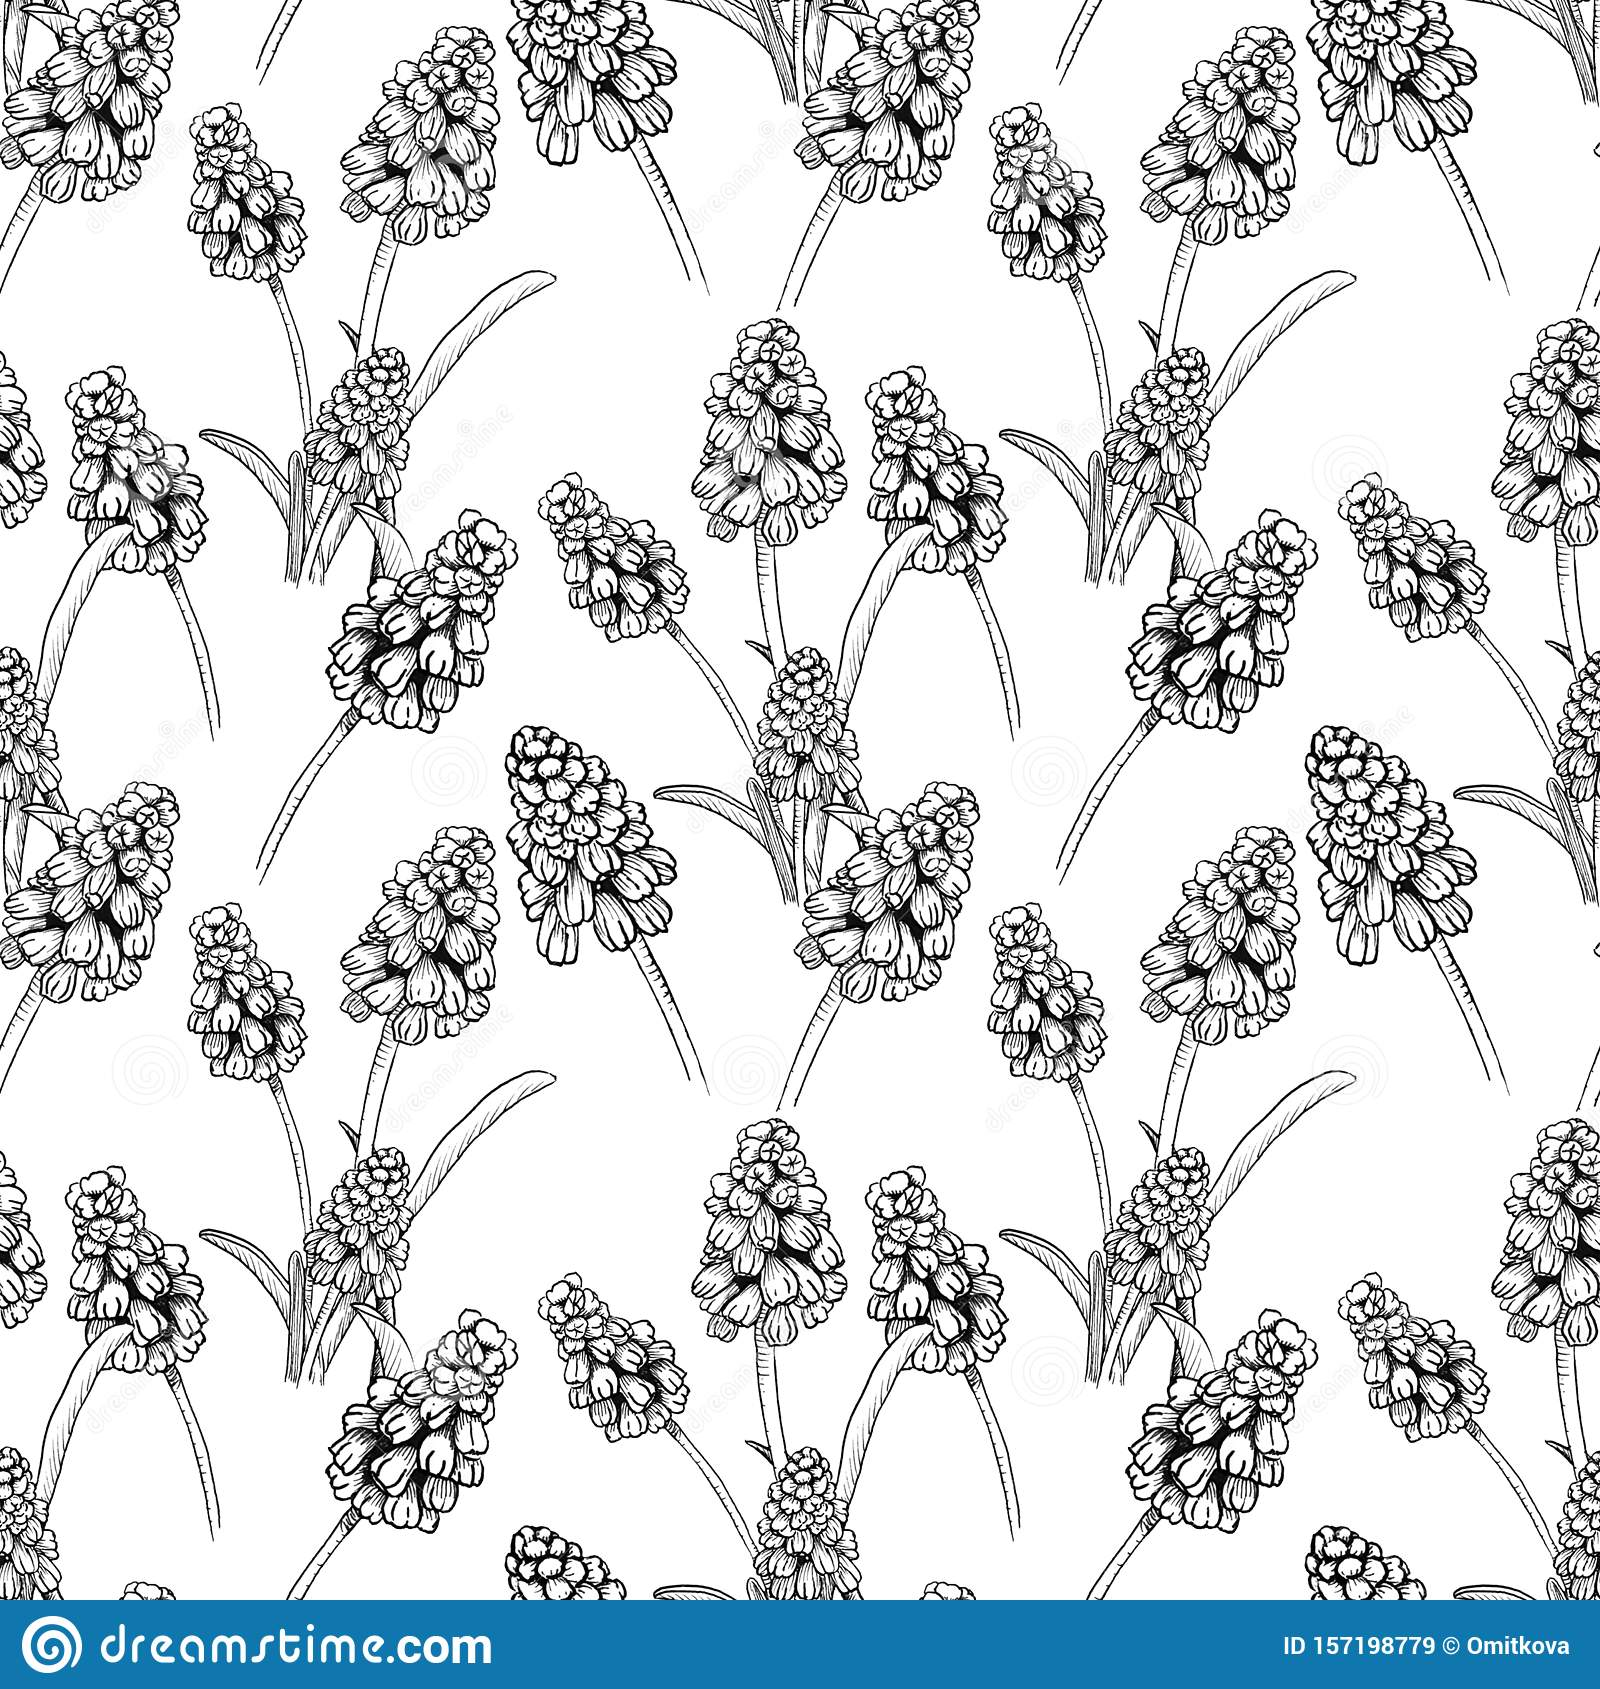 Seamless pattern with realistically painted ink Muscari flowers. Hand drawn illustration on white background modified to